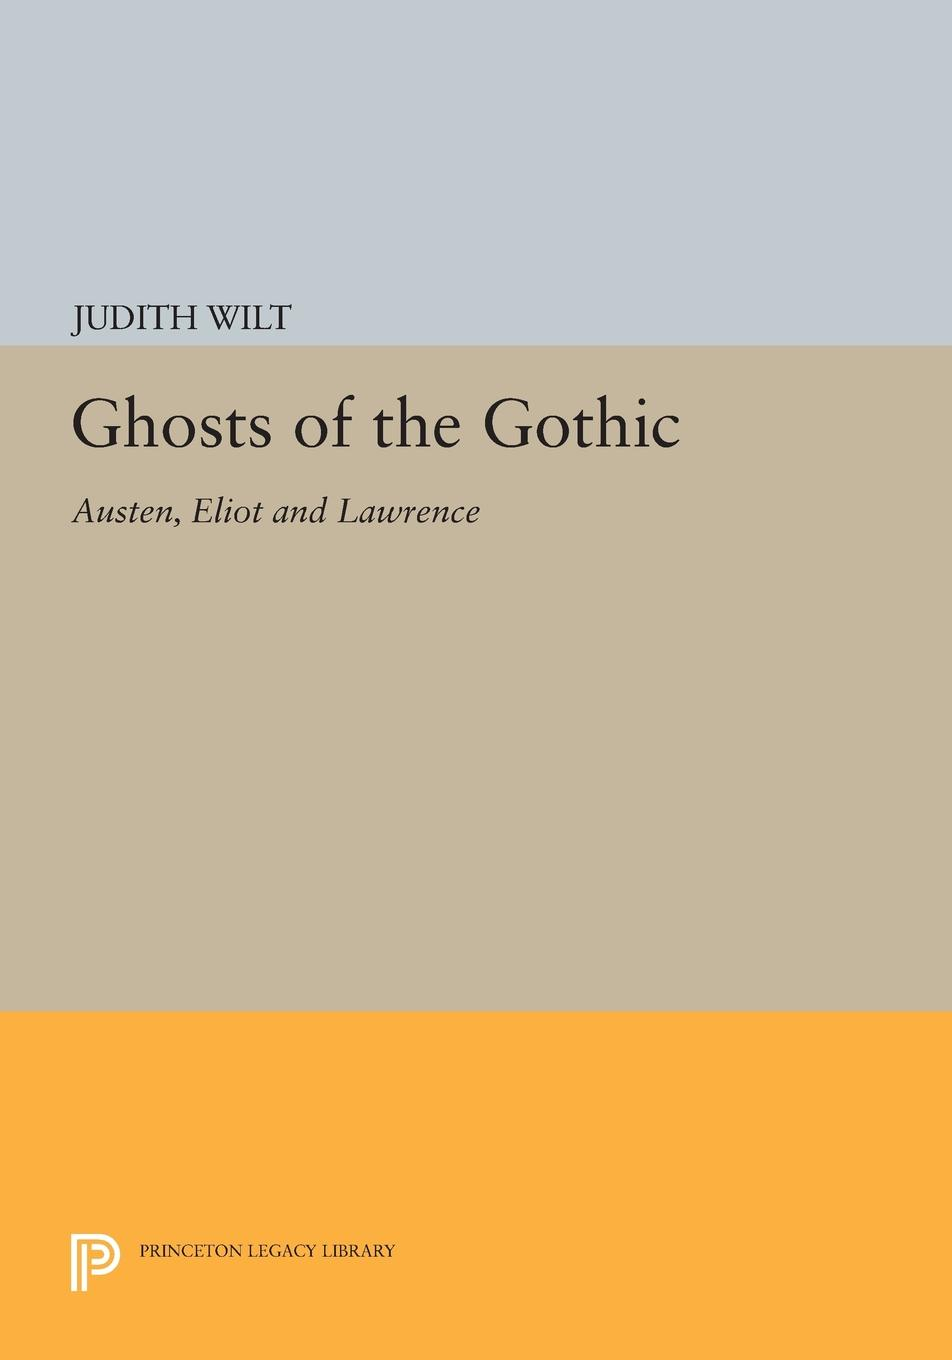 Ghosts of the Gothic